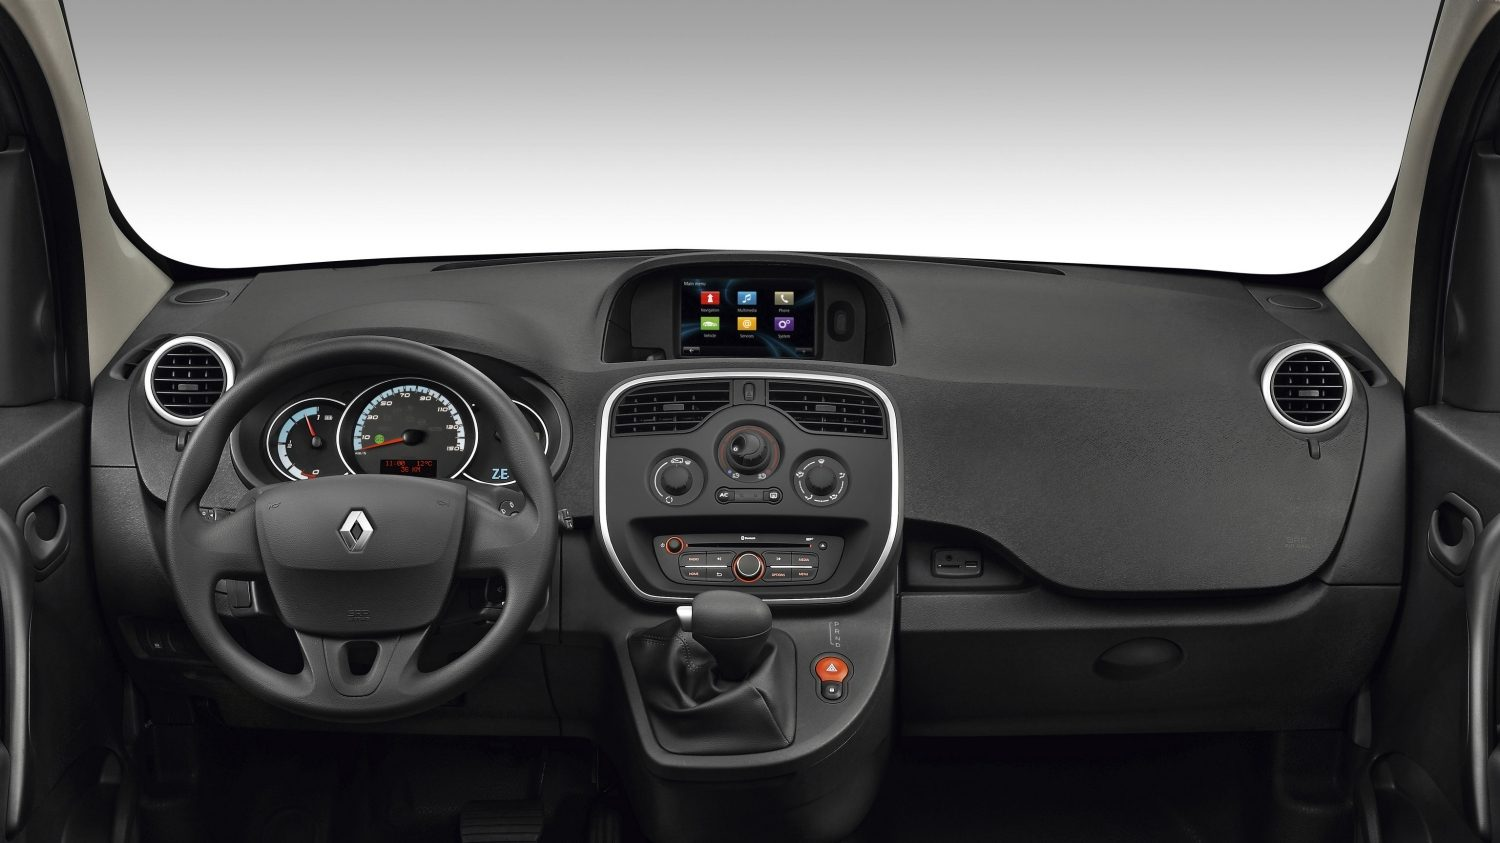 nuovo-kangoo-design-interno-01